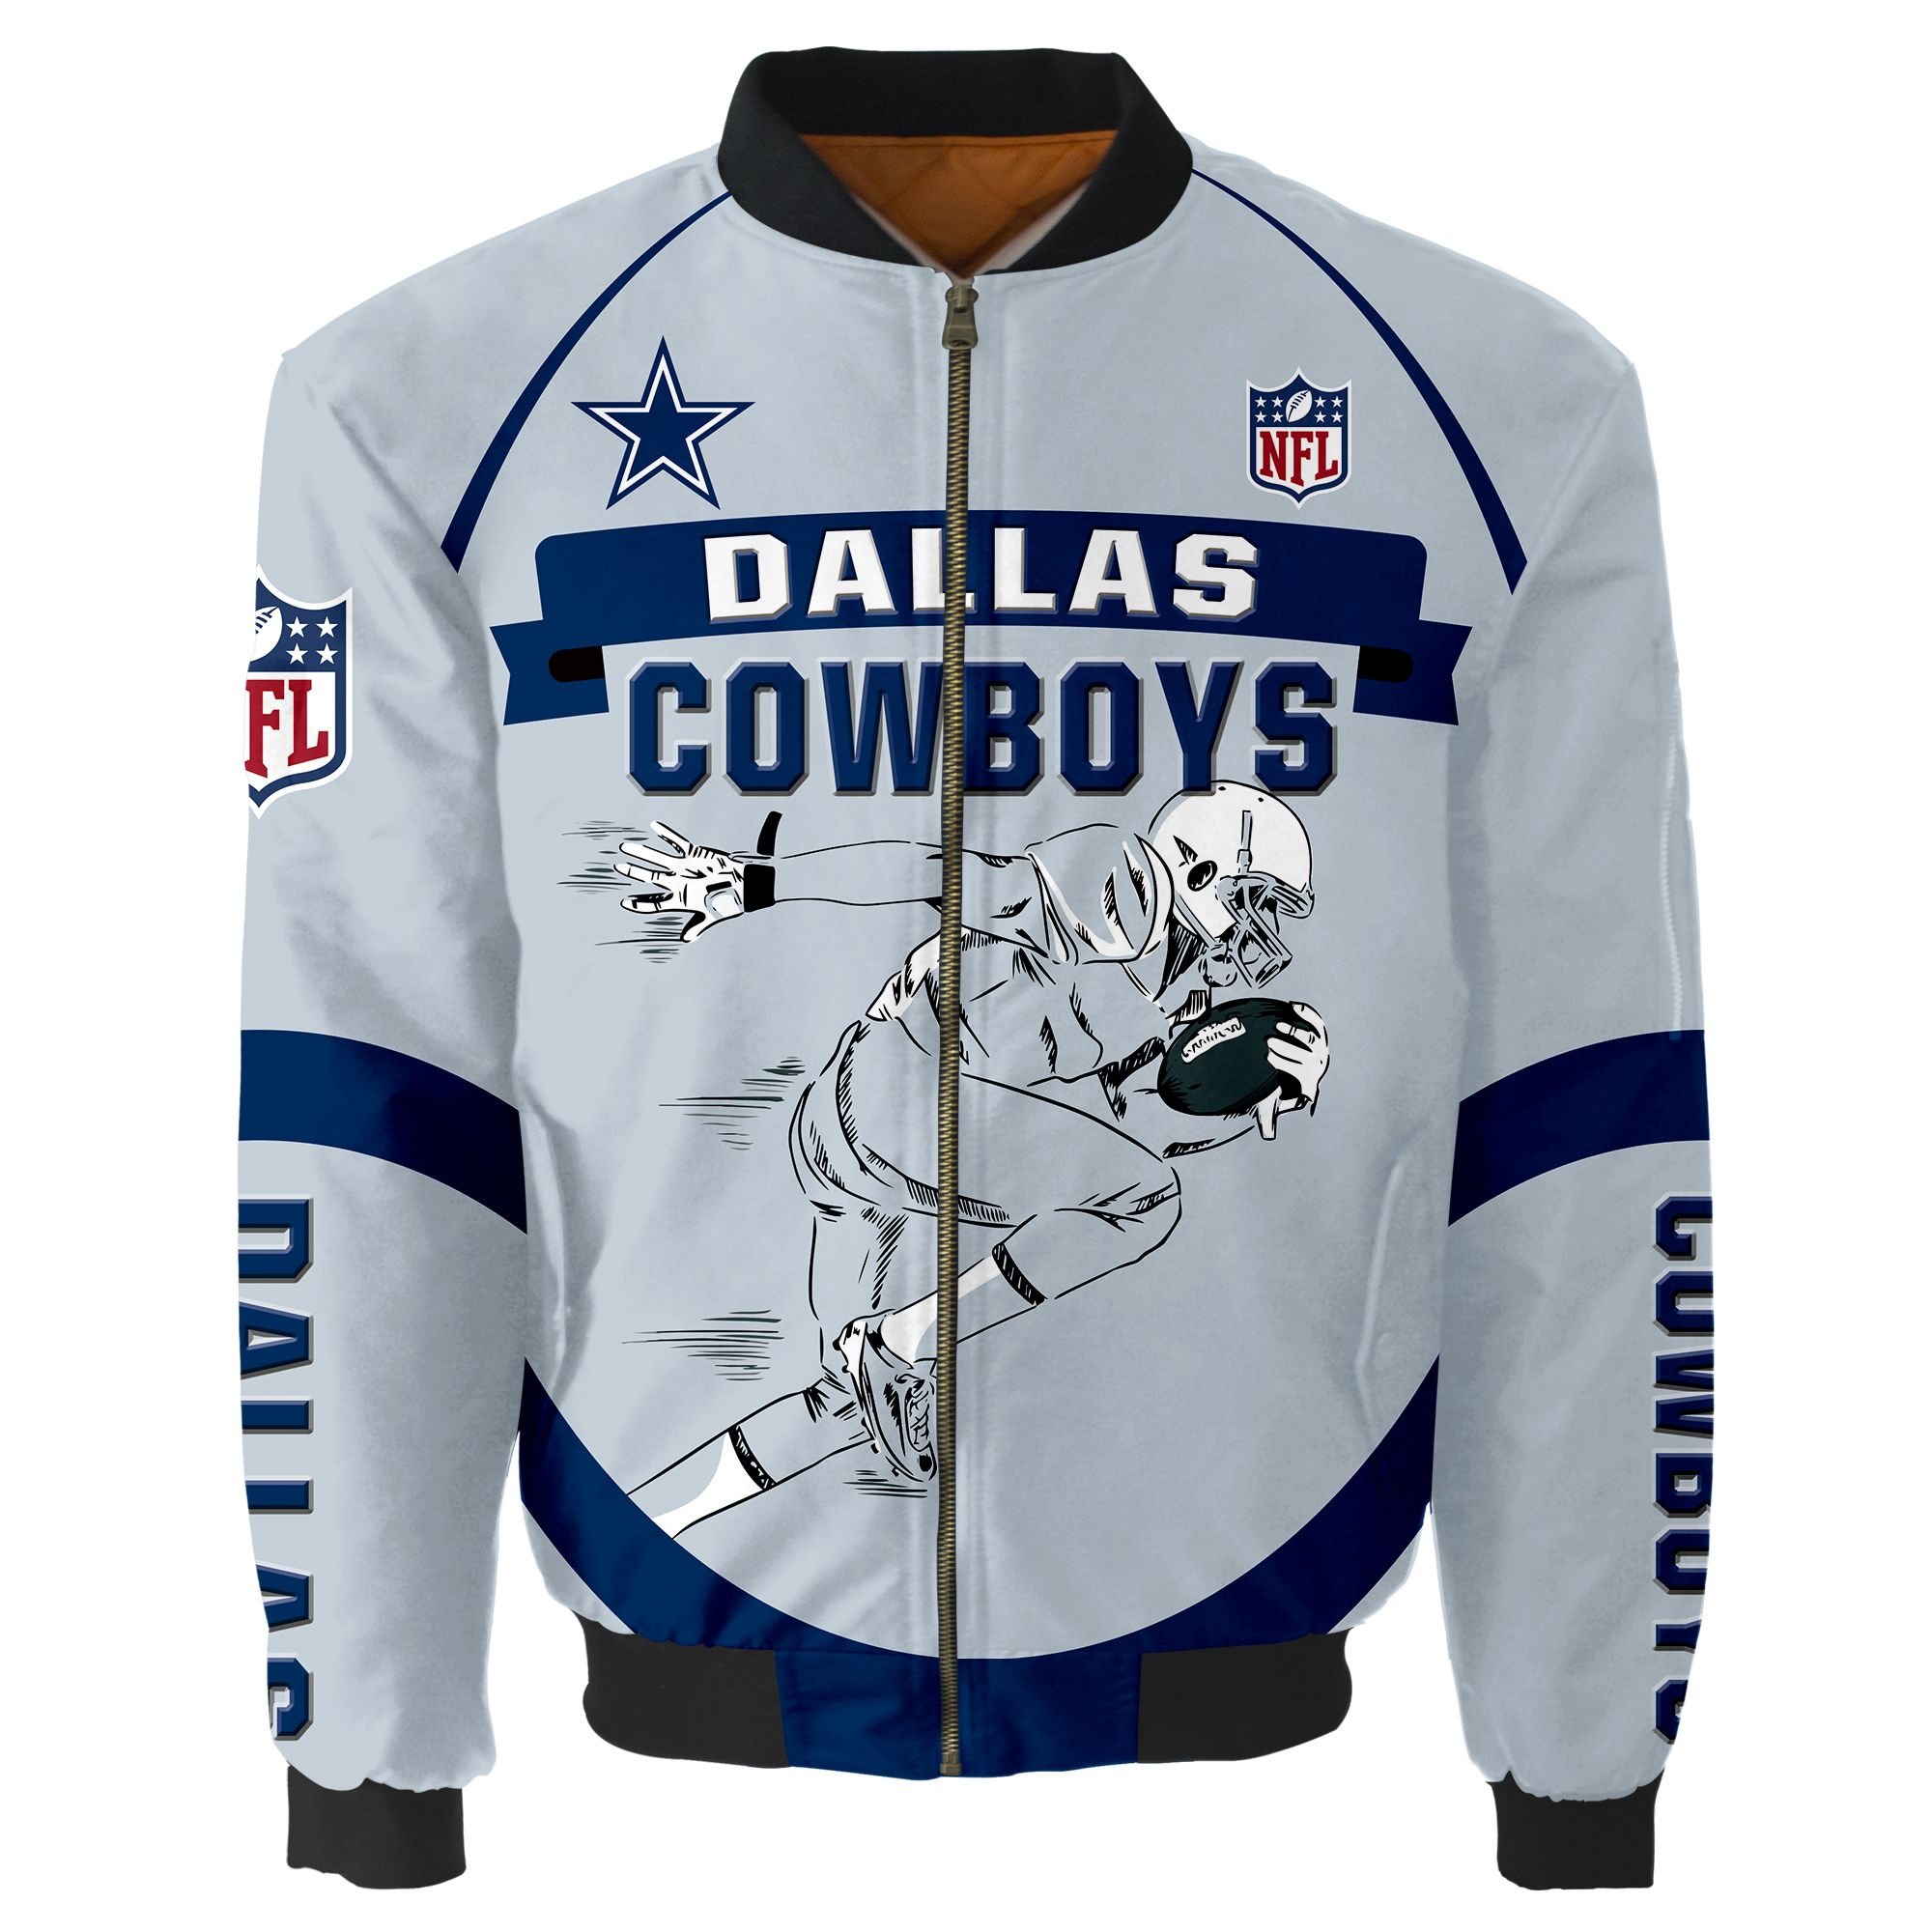 Dallas Cowboys Bomber Jacket Men Women CottonPadded Air